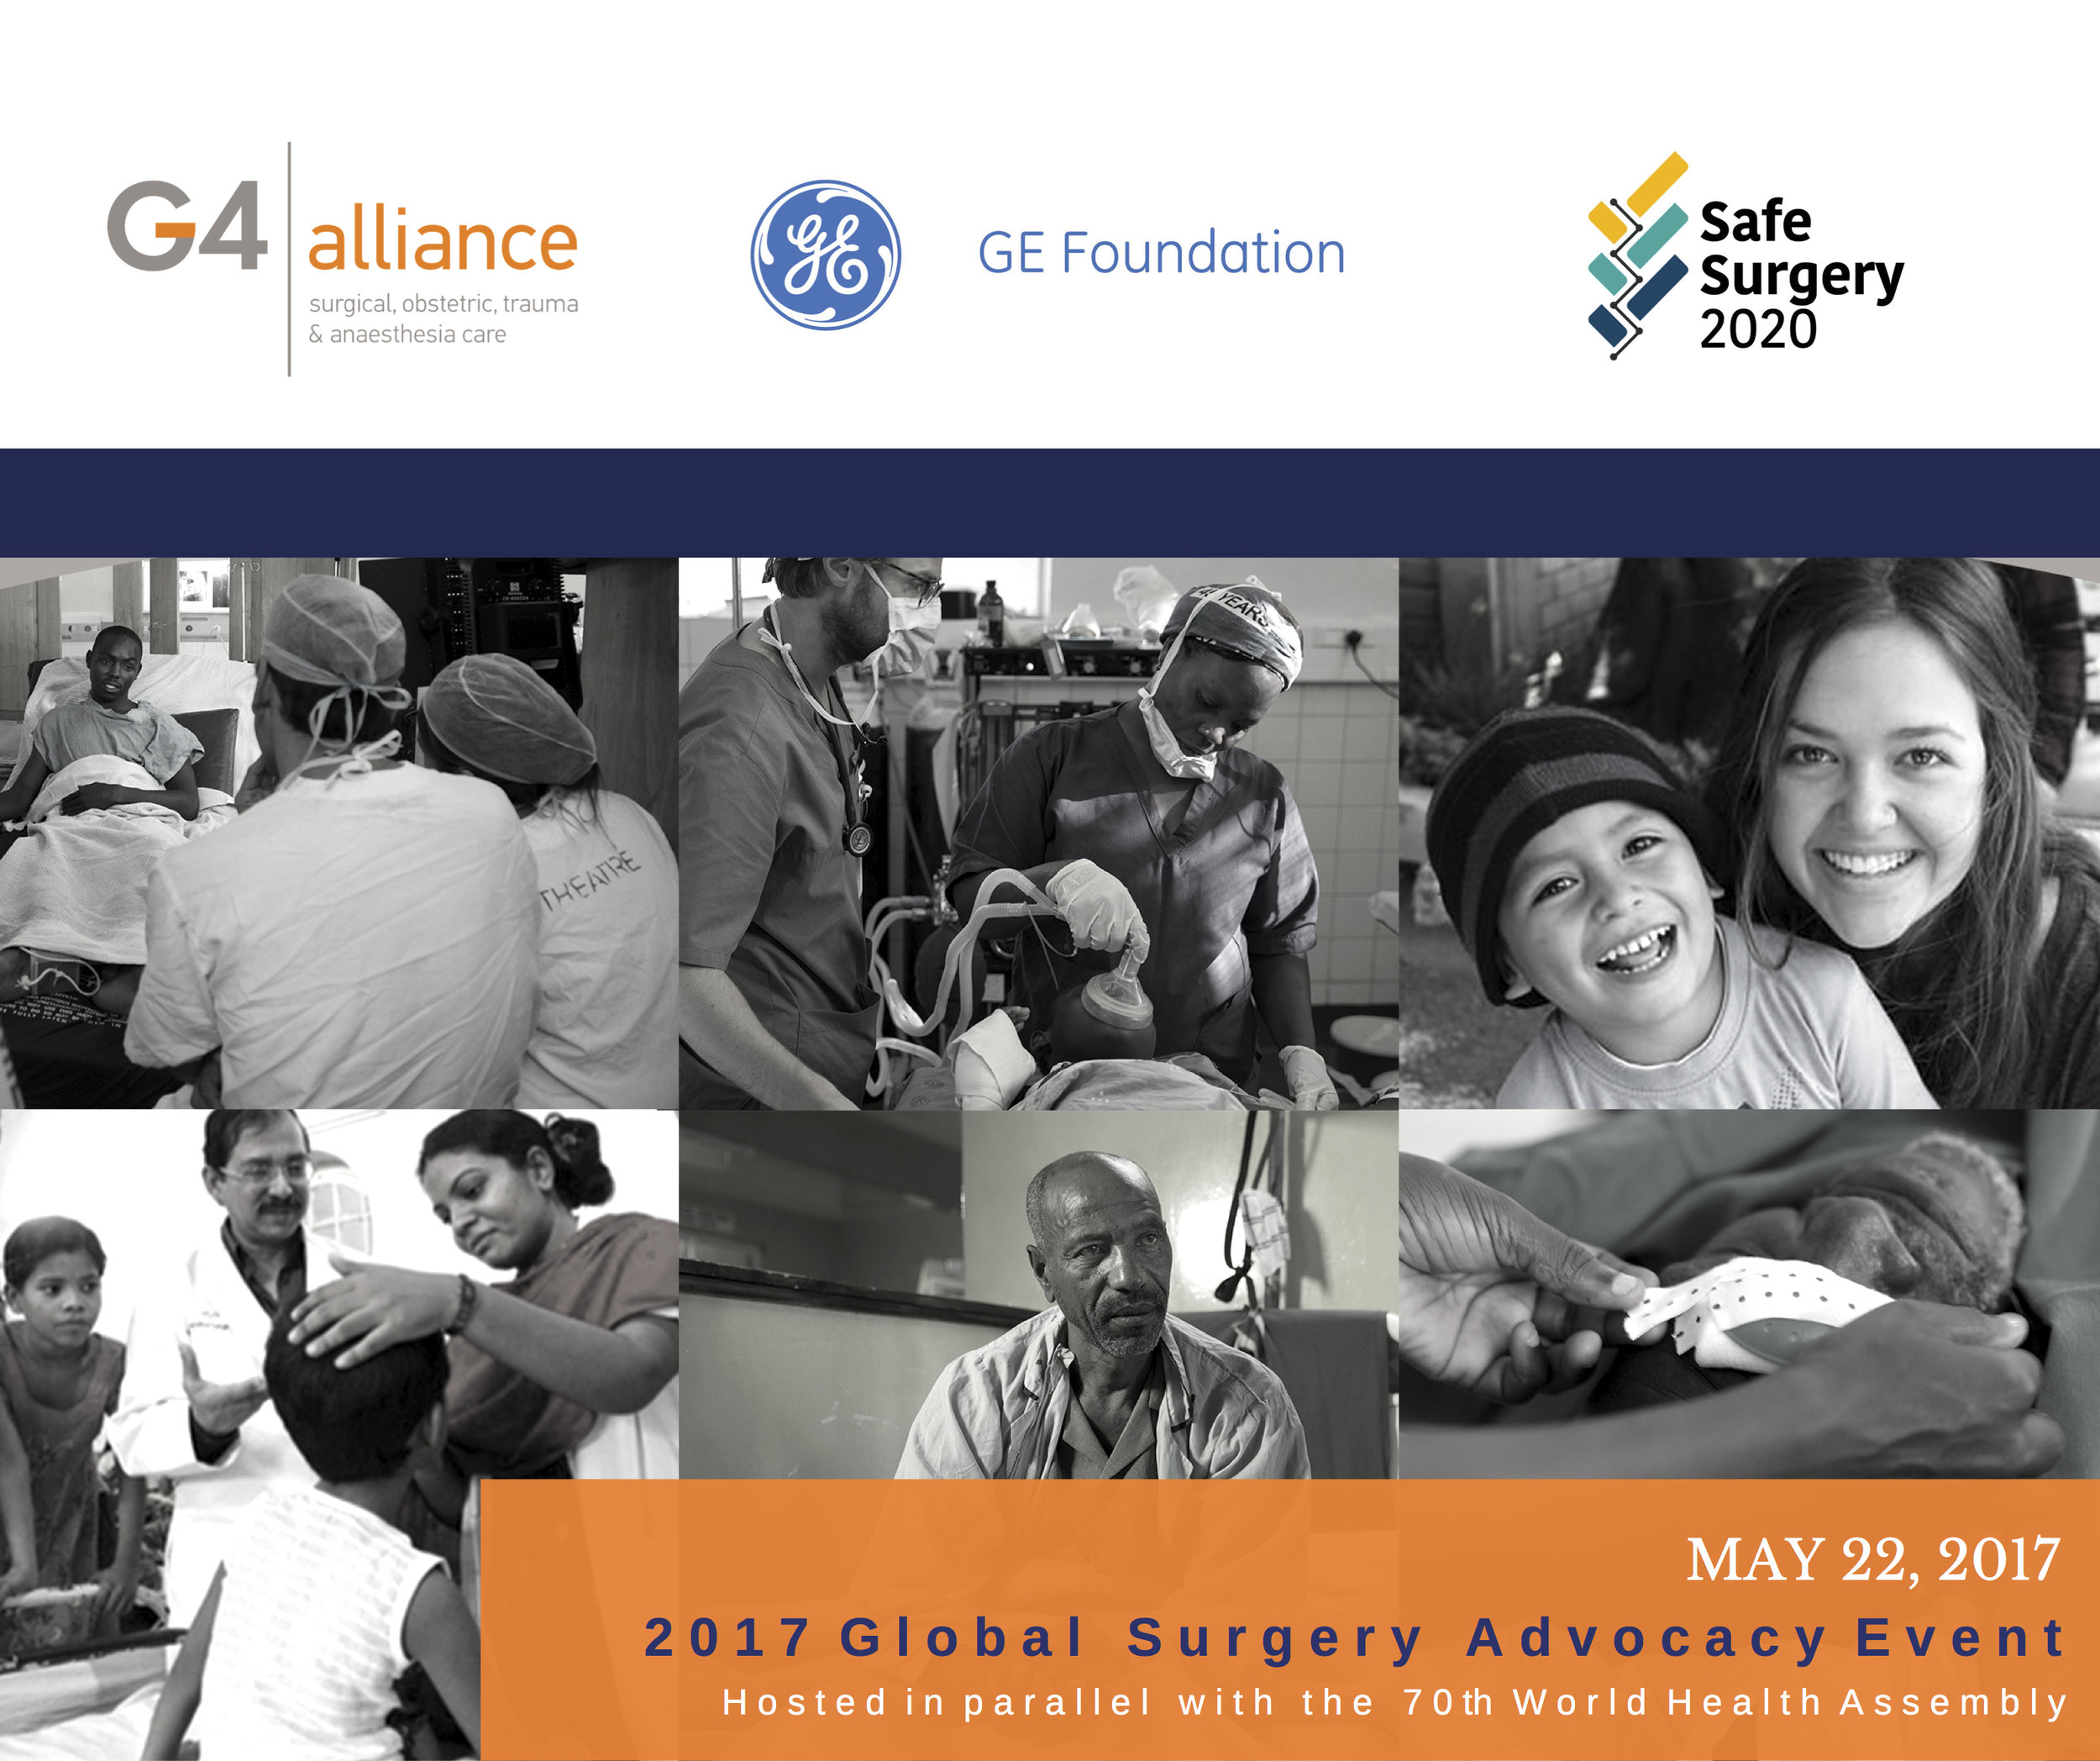 Hosted by the G4 Alliance and our network of 80+ organizations, in collaboration with the  GE Foundation  and  Safe Surgery 2020